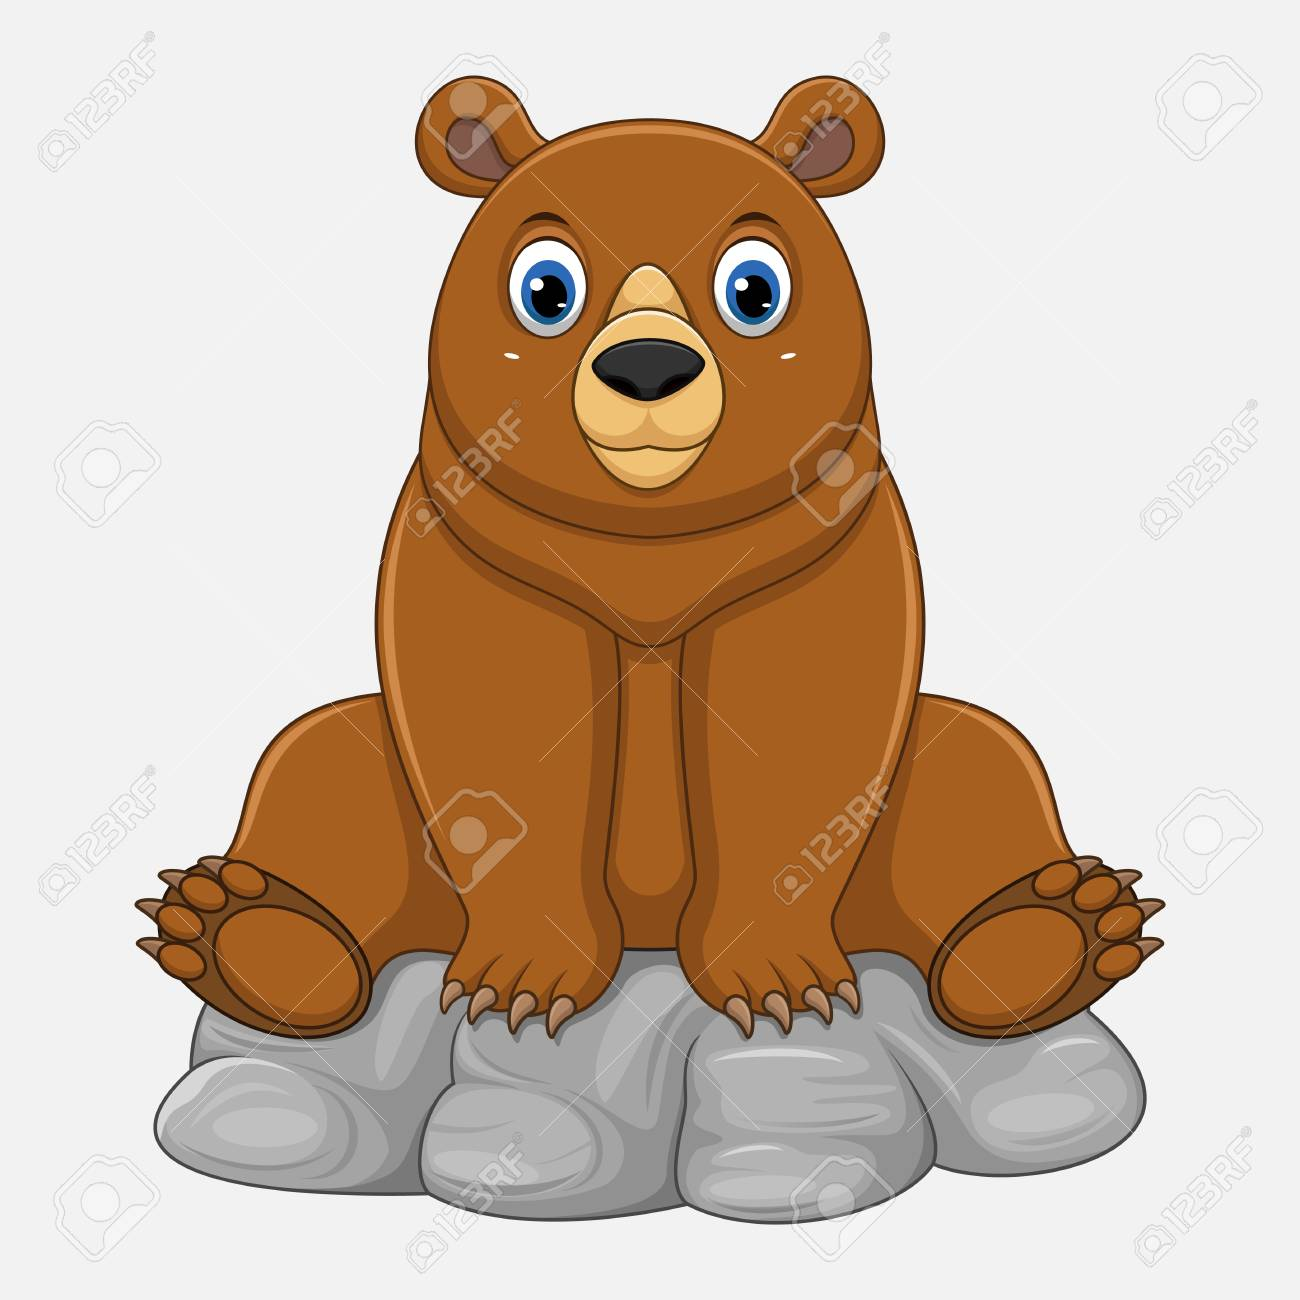 Cute Baby Bear Cartoon Sitting On Rock Stock Photo Picture And Royalty Free Image Image 102802036